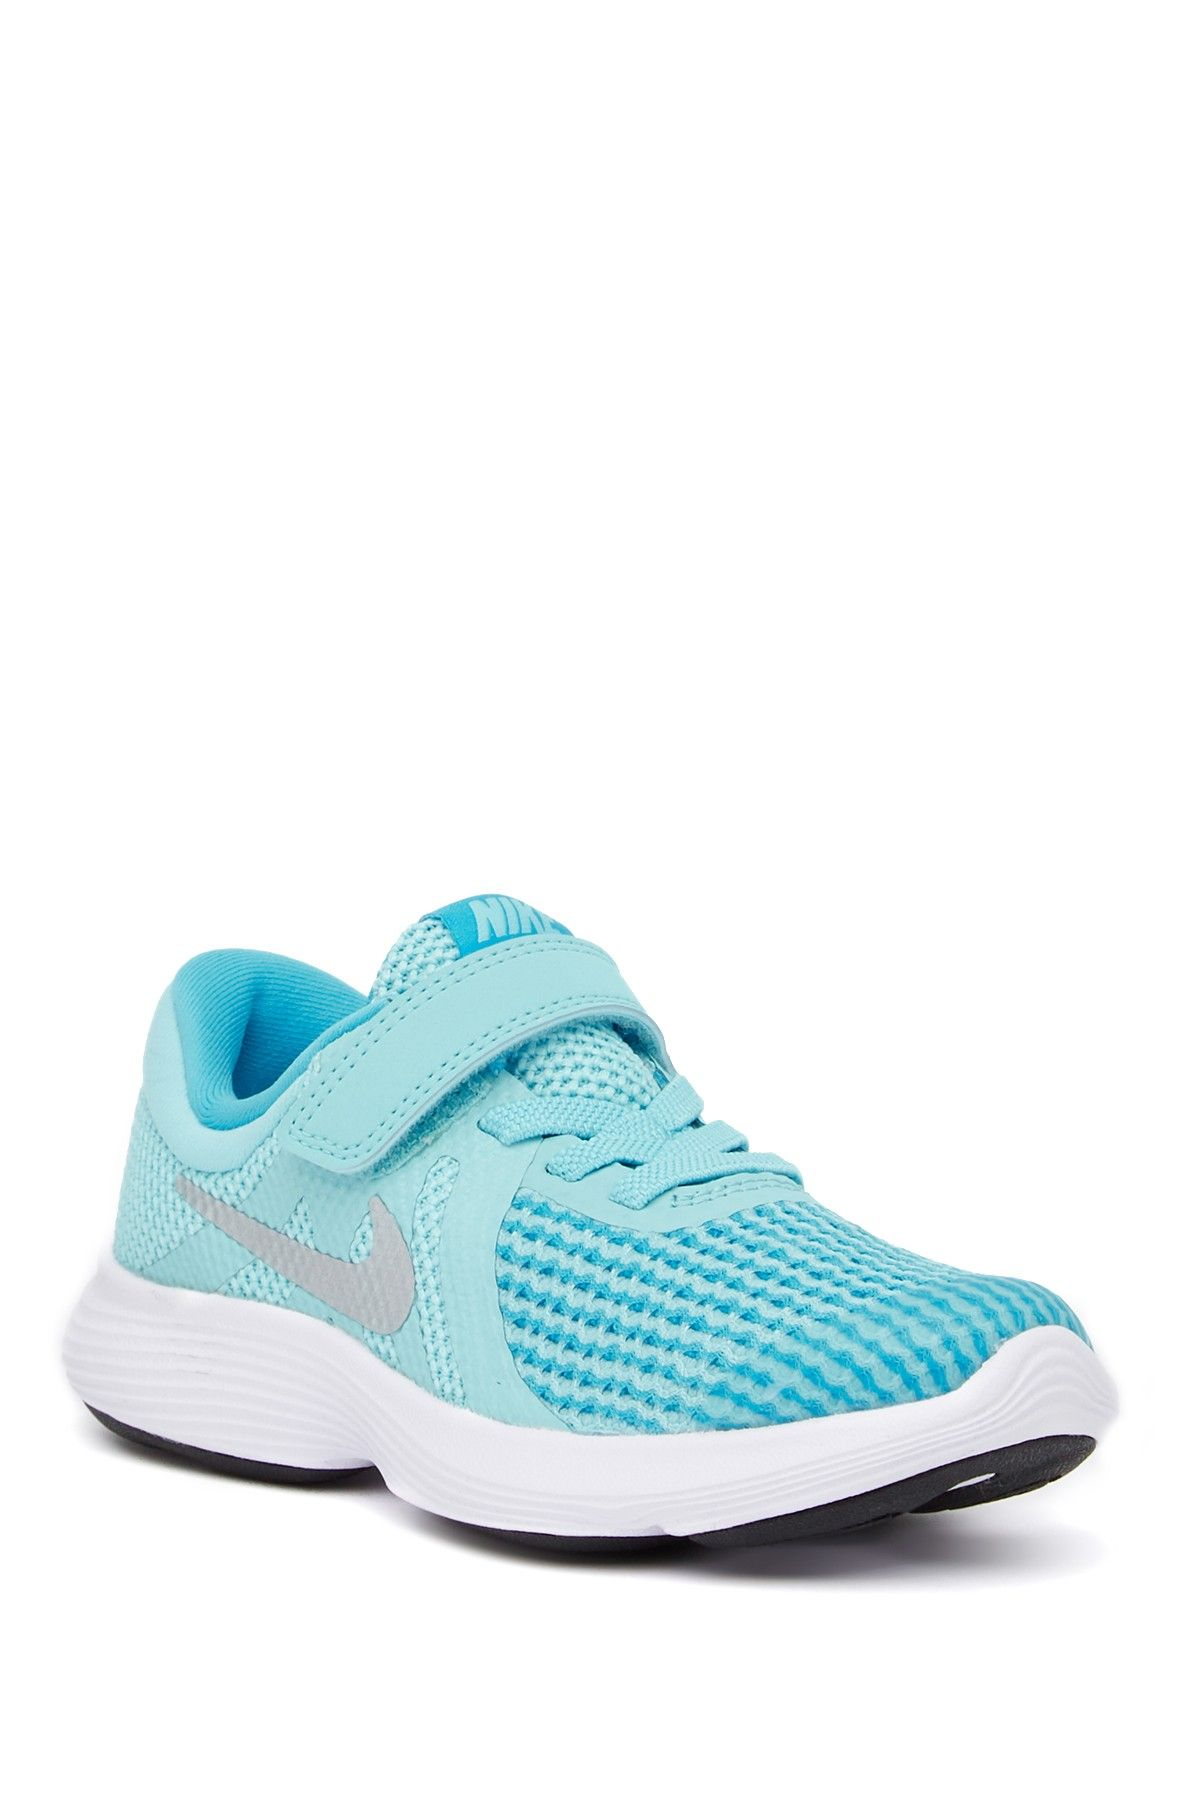 Revolution 4 Sneaker (Little Kid) | Sneakers, Nike, Baby shoes